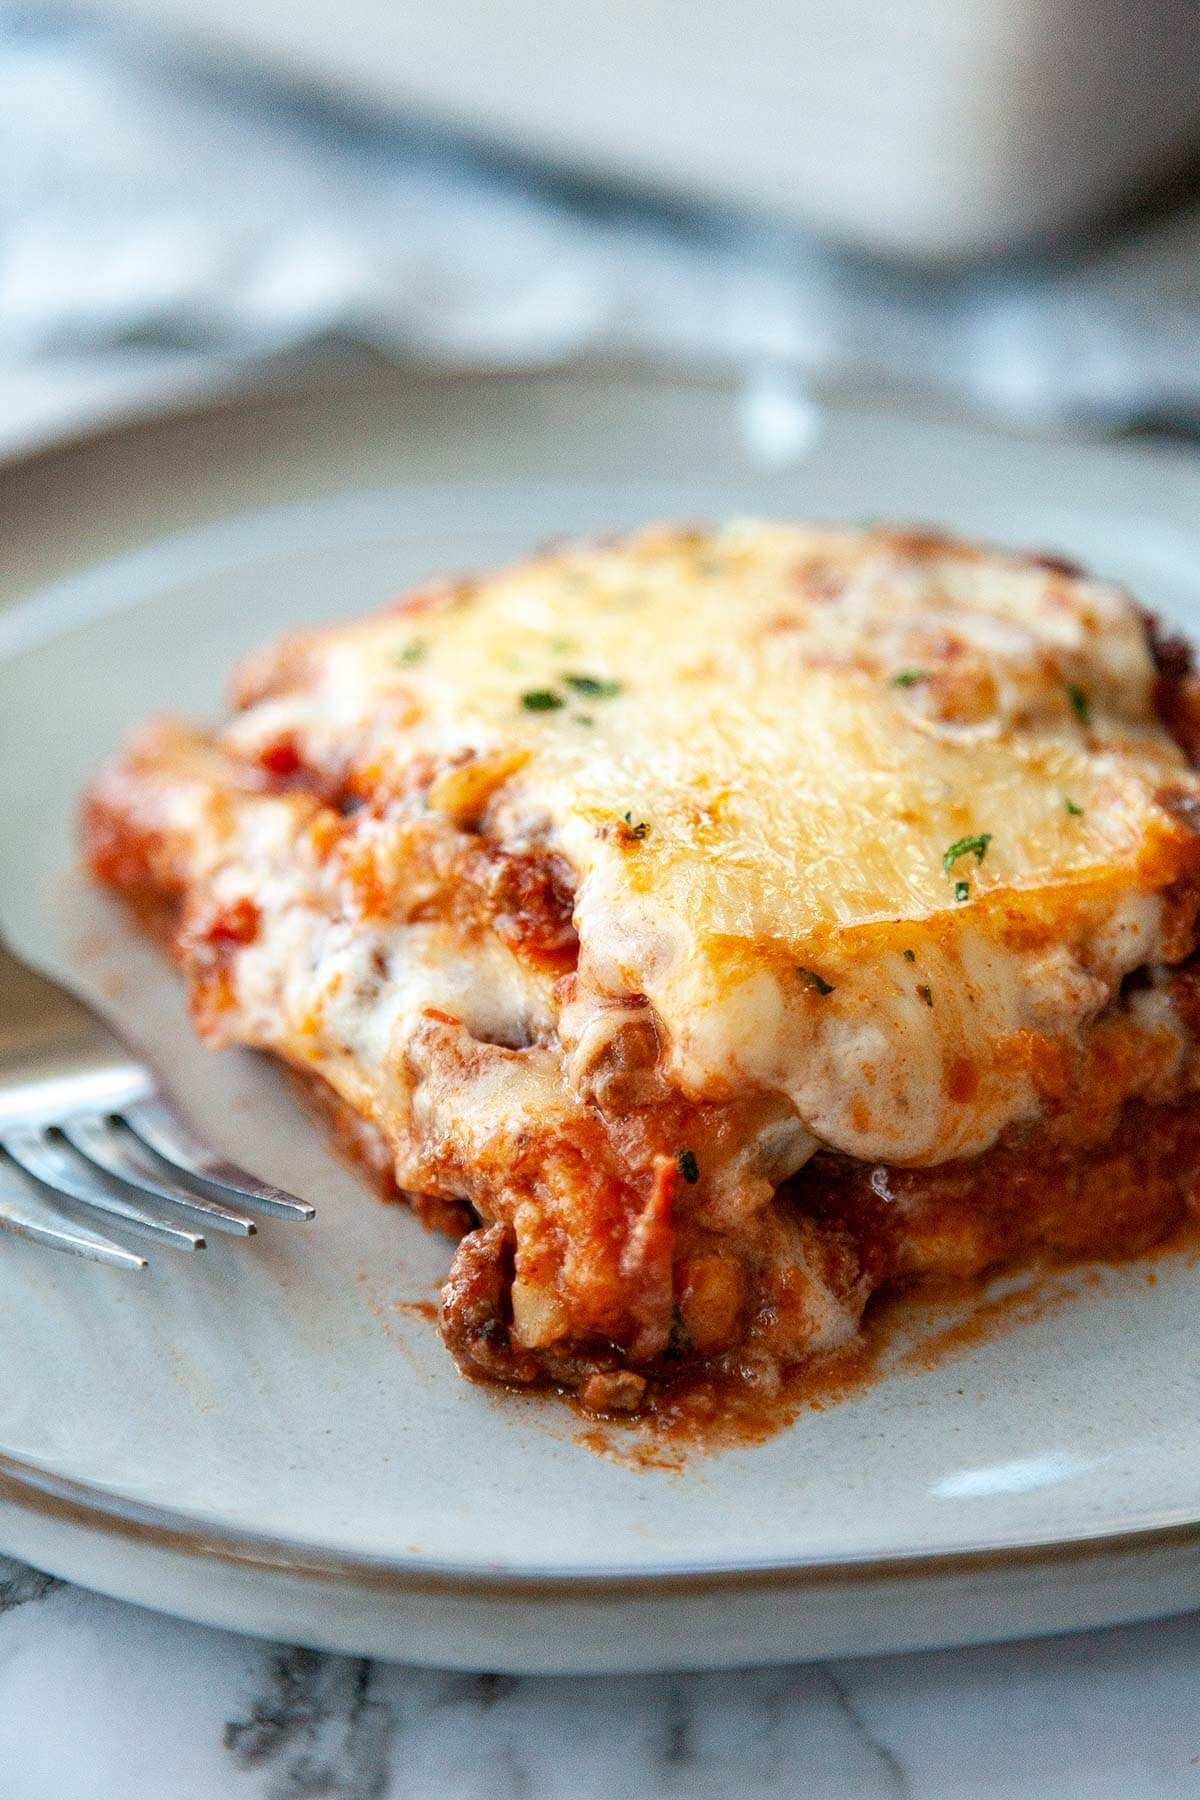 Creamy Lasagna Without Ricotta Cheese Recipe Easy Lasagna Recipe Lasagna Without Ricotta Cheese Lasagna Recipe Without Cottage Cheese